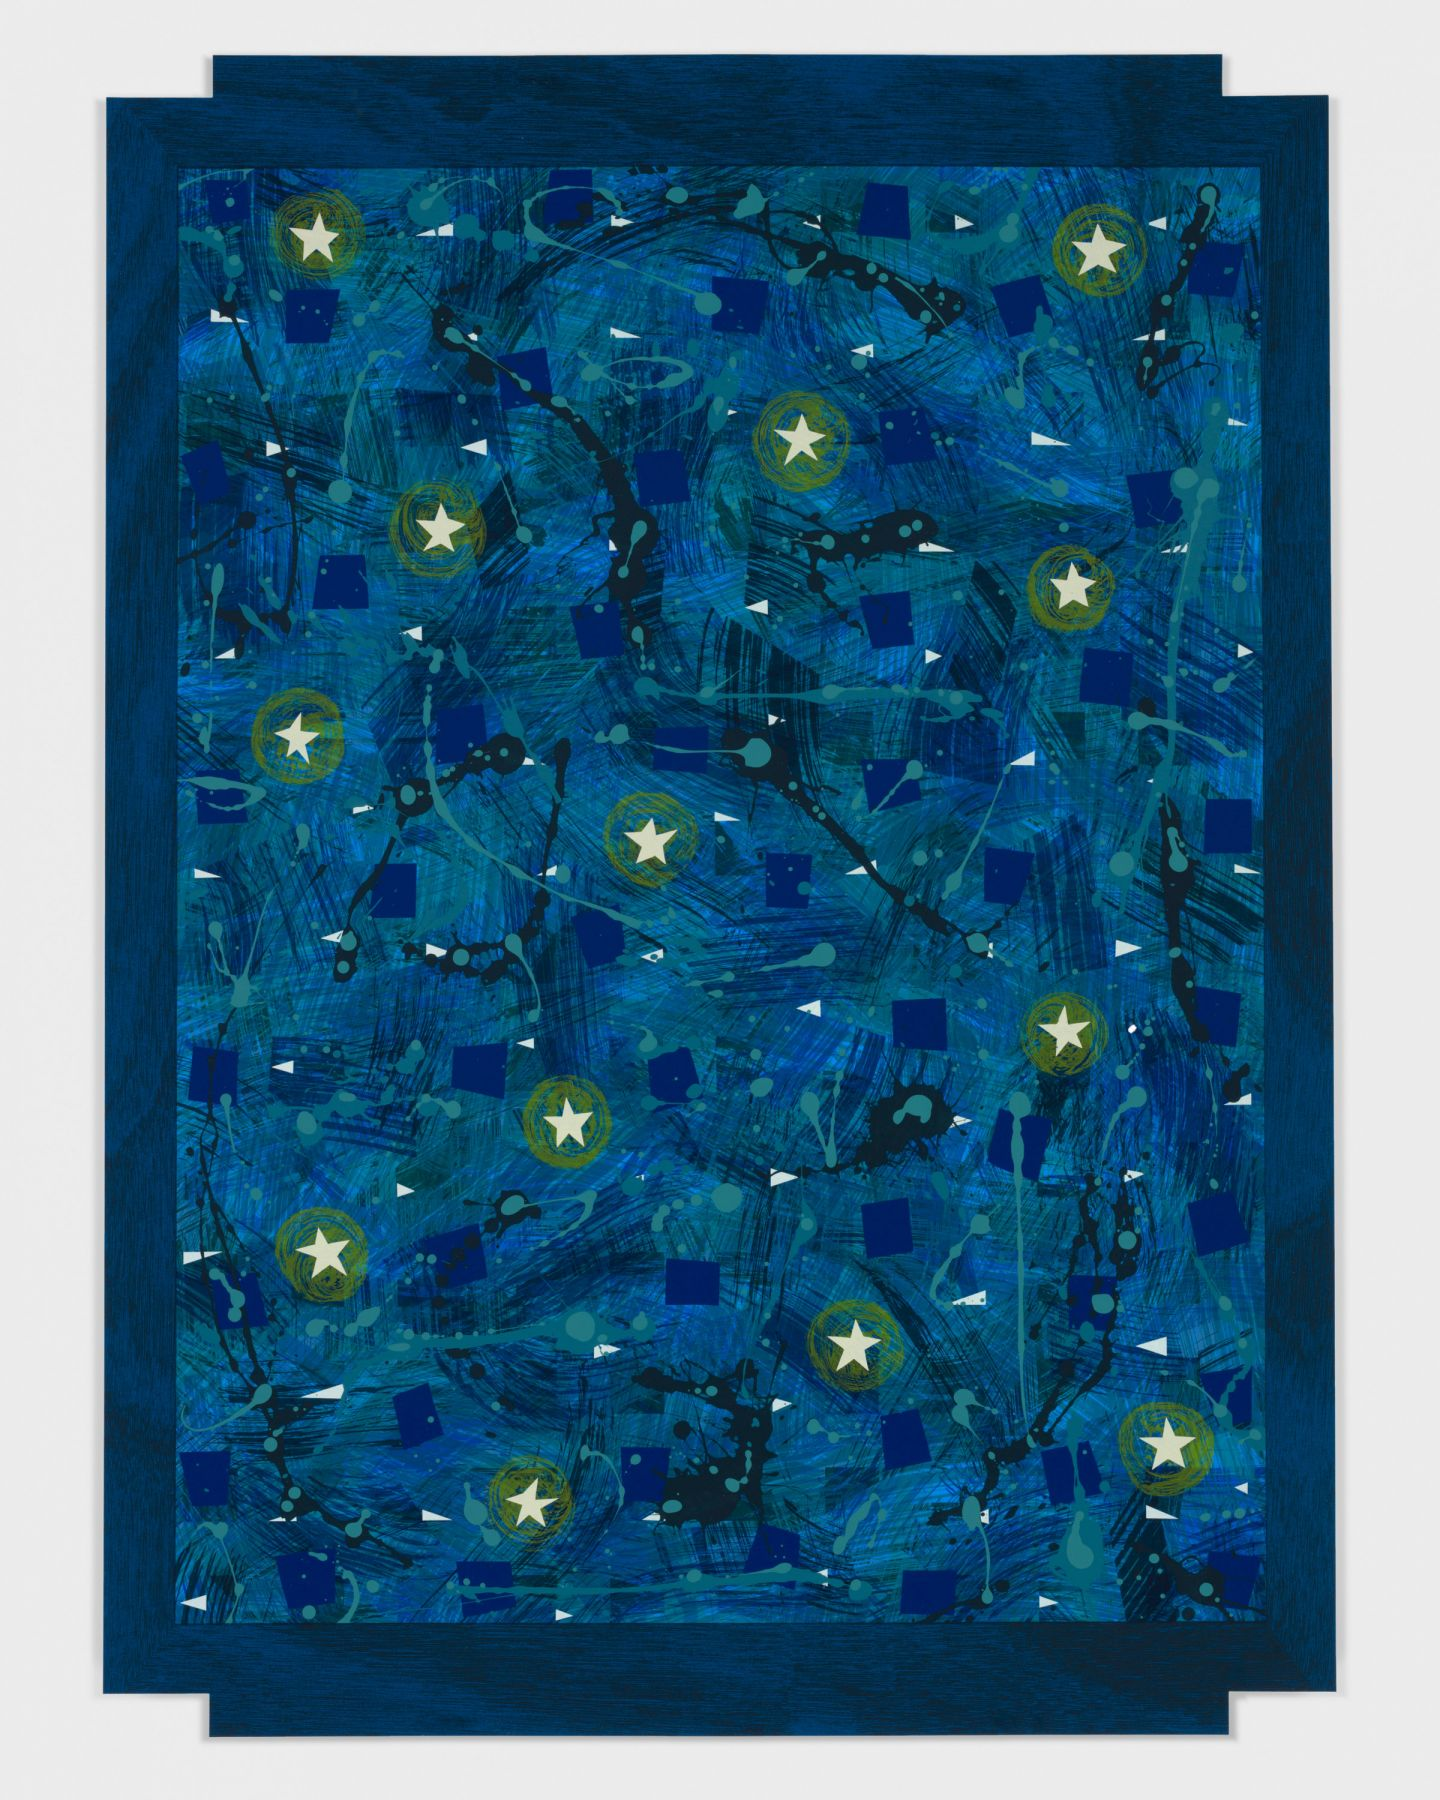 Starry Sky, 2018 Serigraph in 18 colors from hand painted films on Rising Museum board